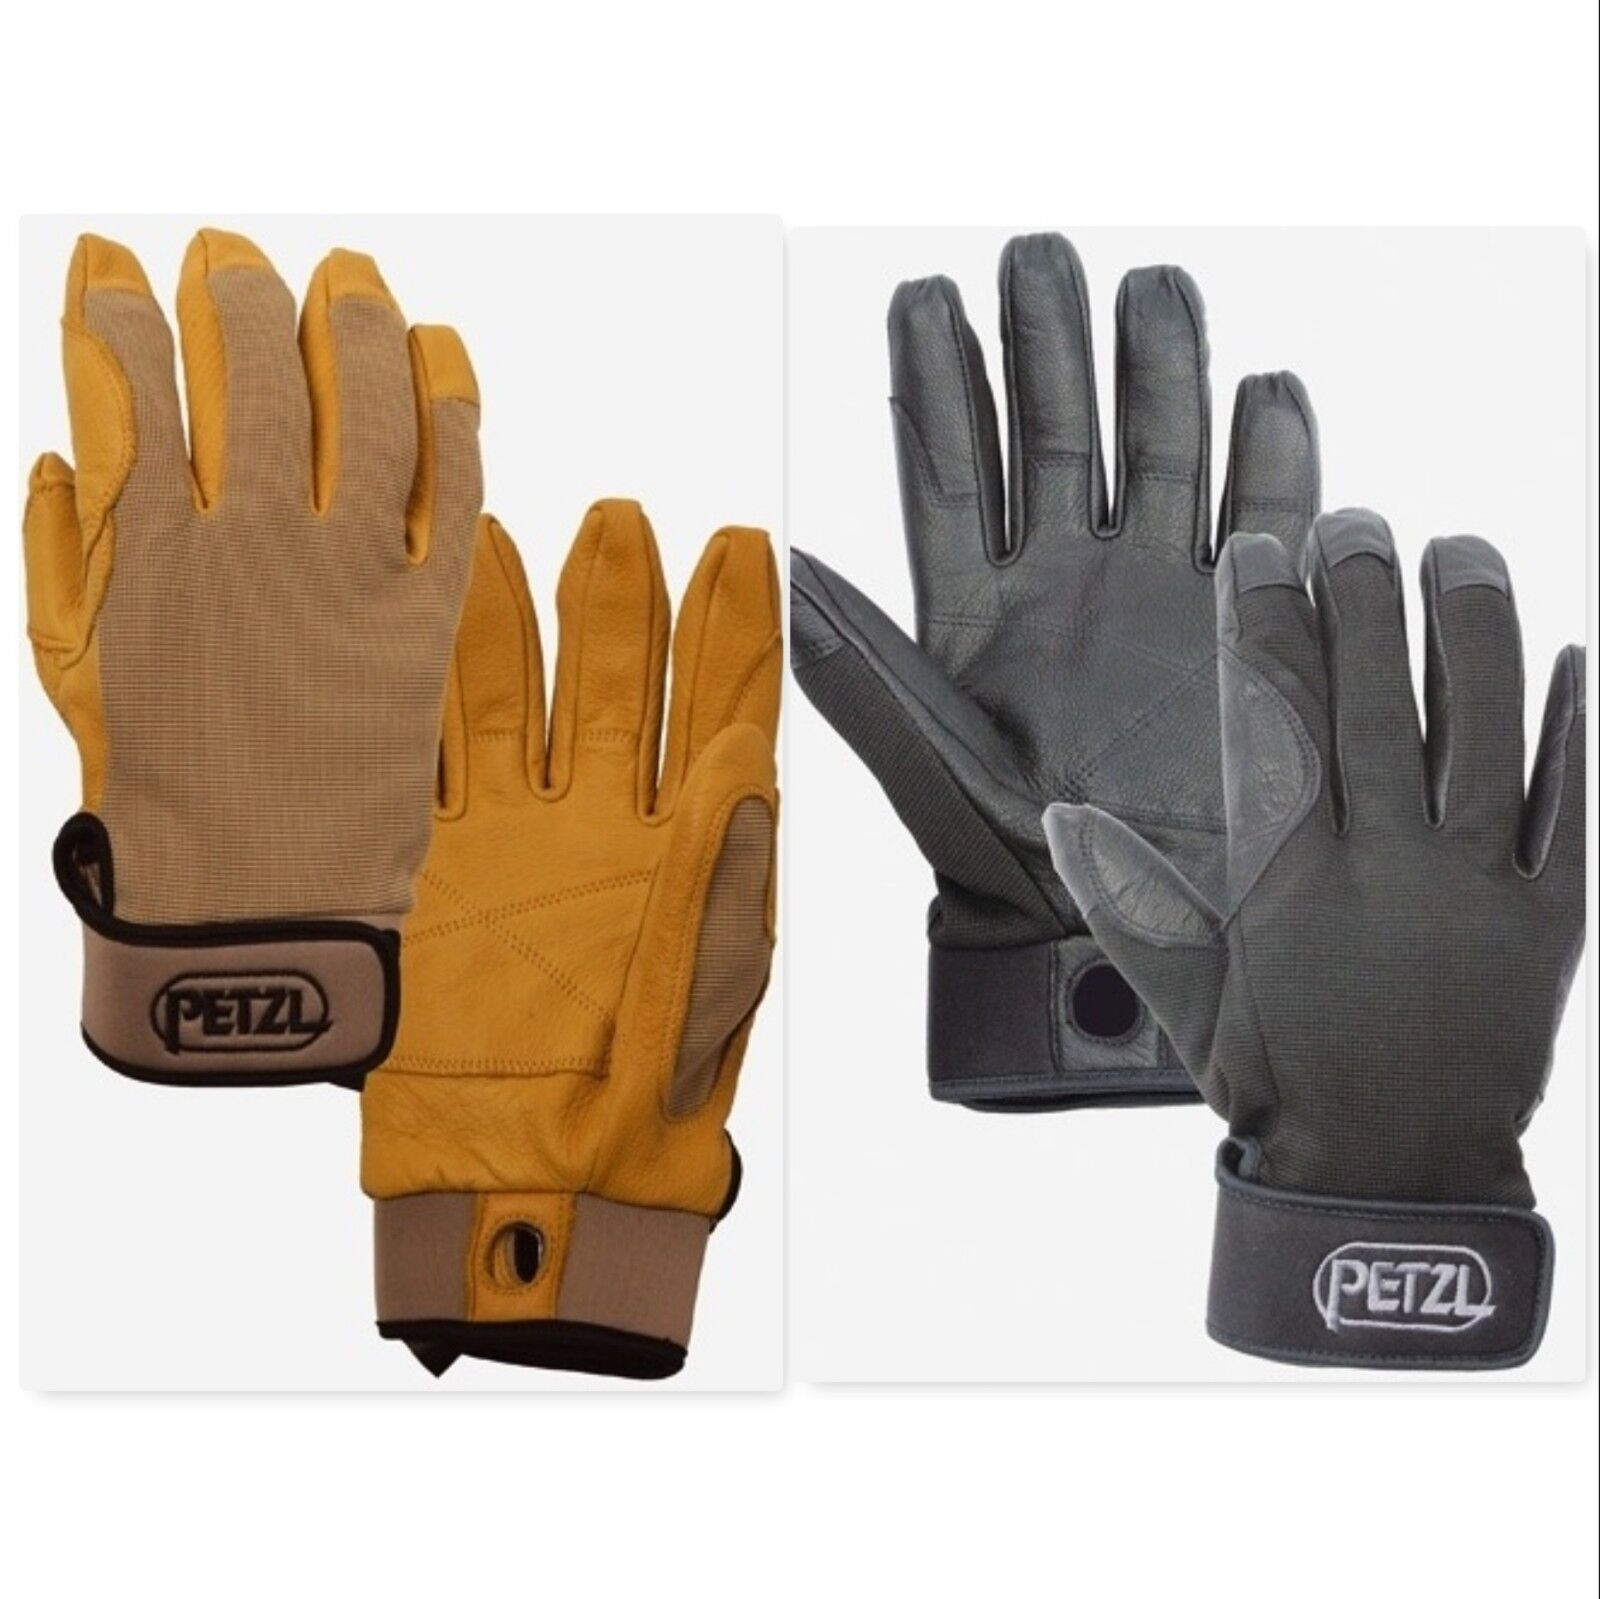 Petzl Cordex Belay Rappel Protection Gloves High Quality Durable (Tan/Black)